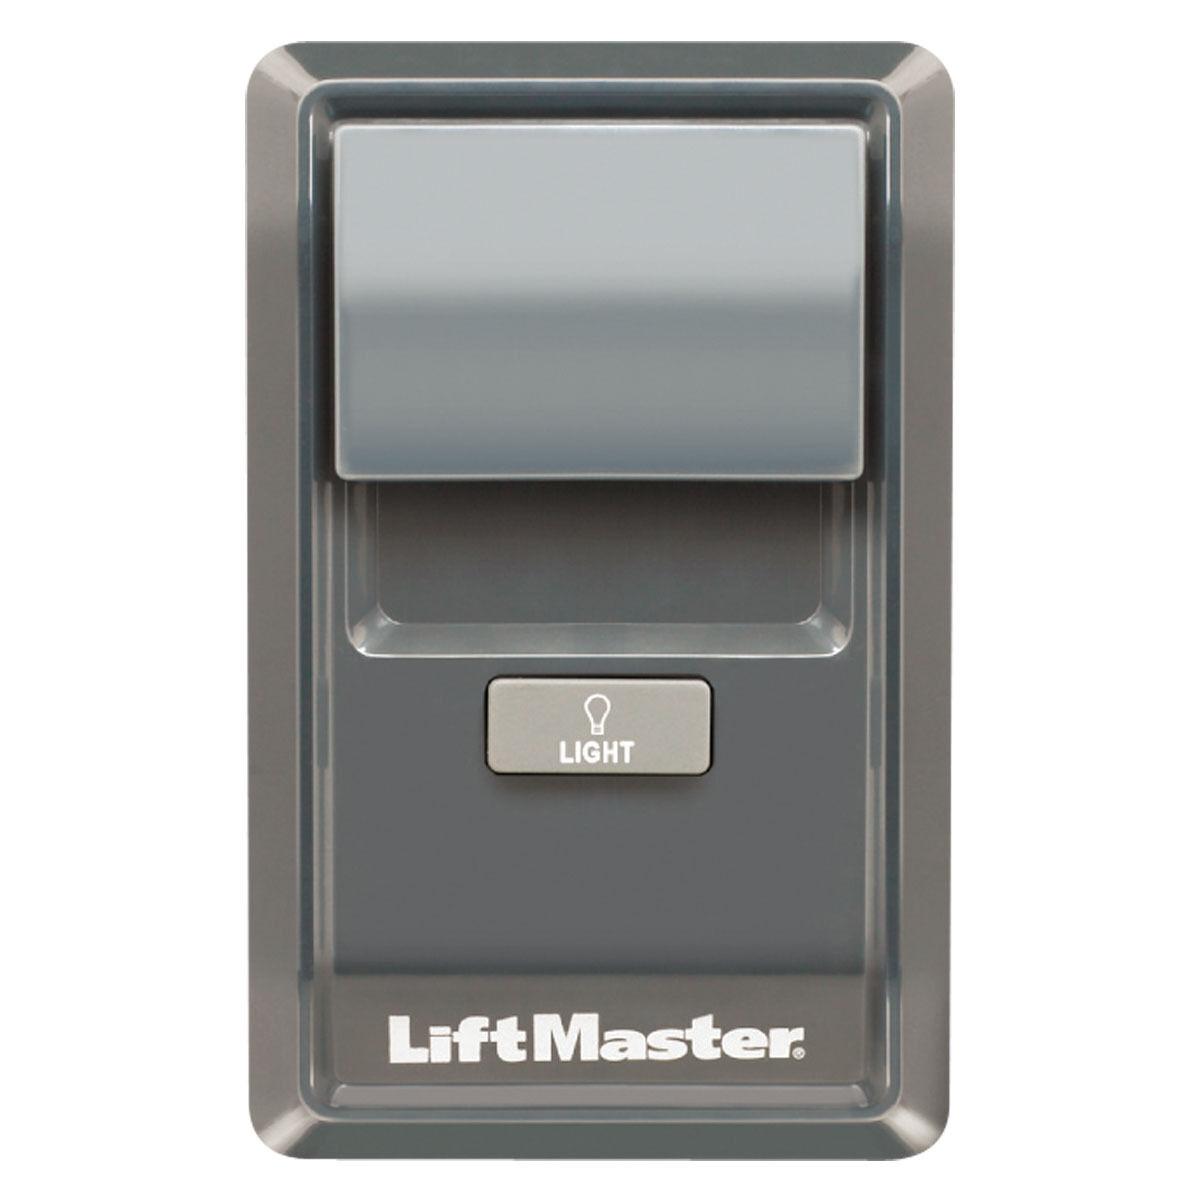 885LM LiftMaster Chamberlain LiftMaster Garage Door Wall